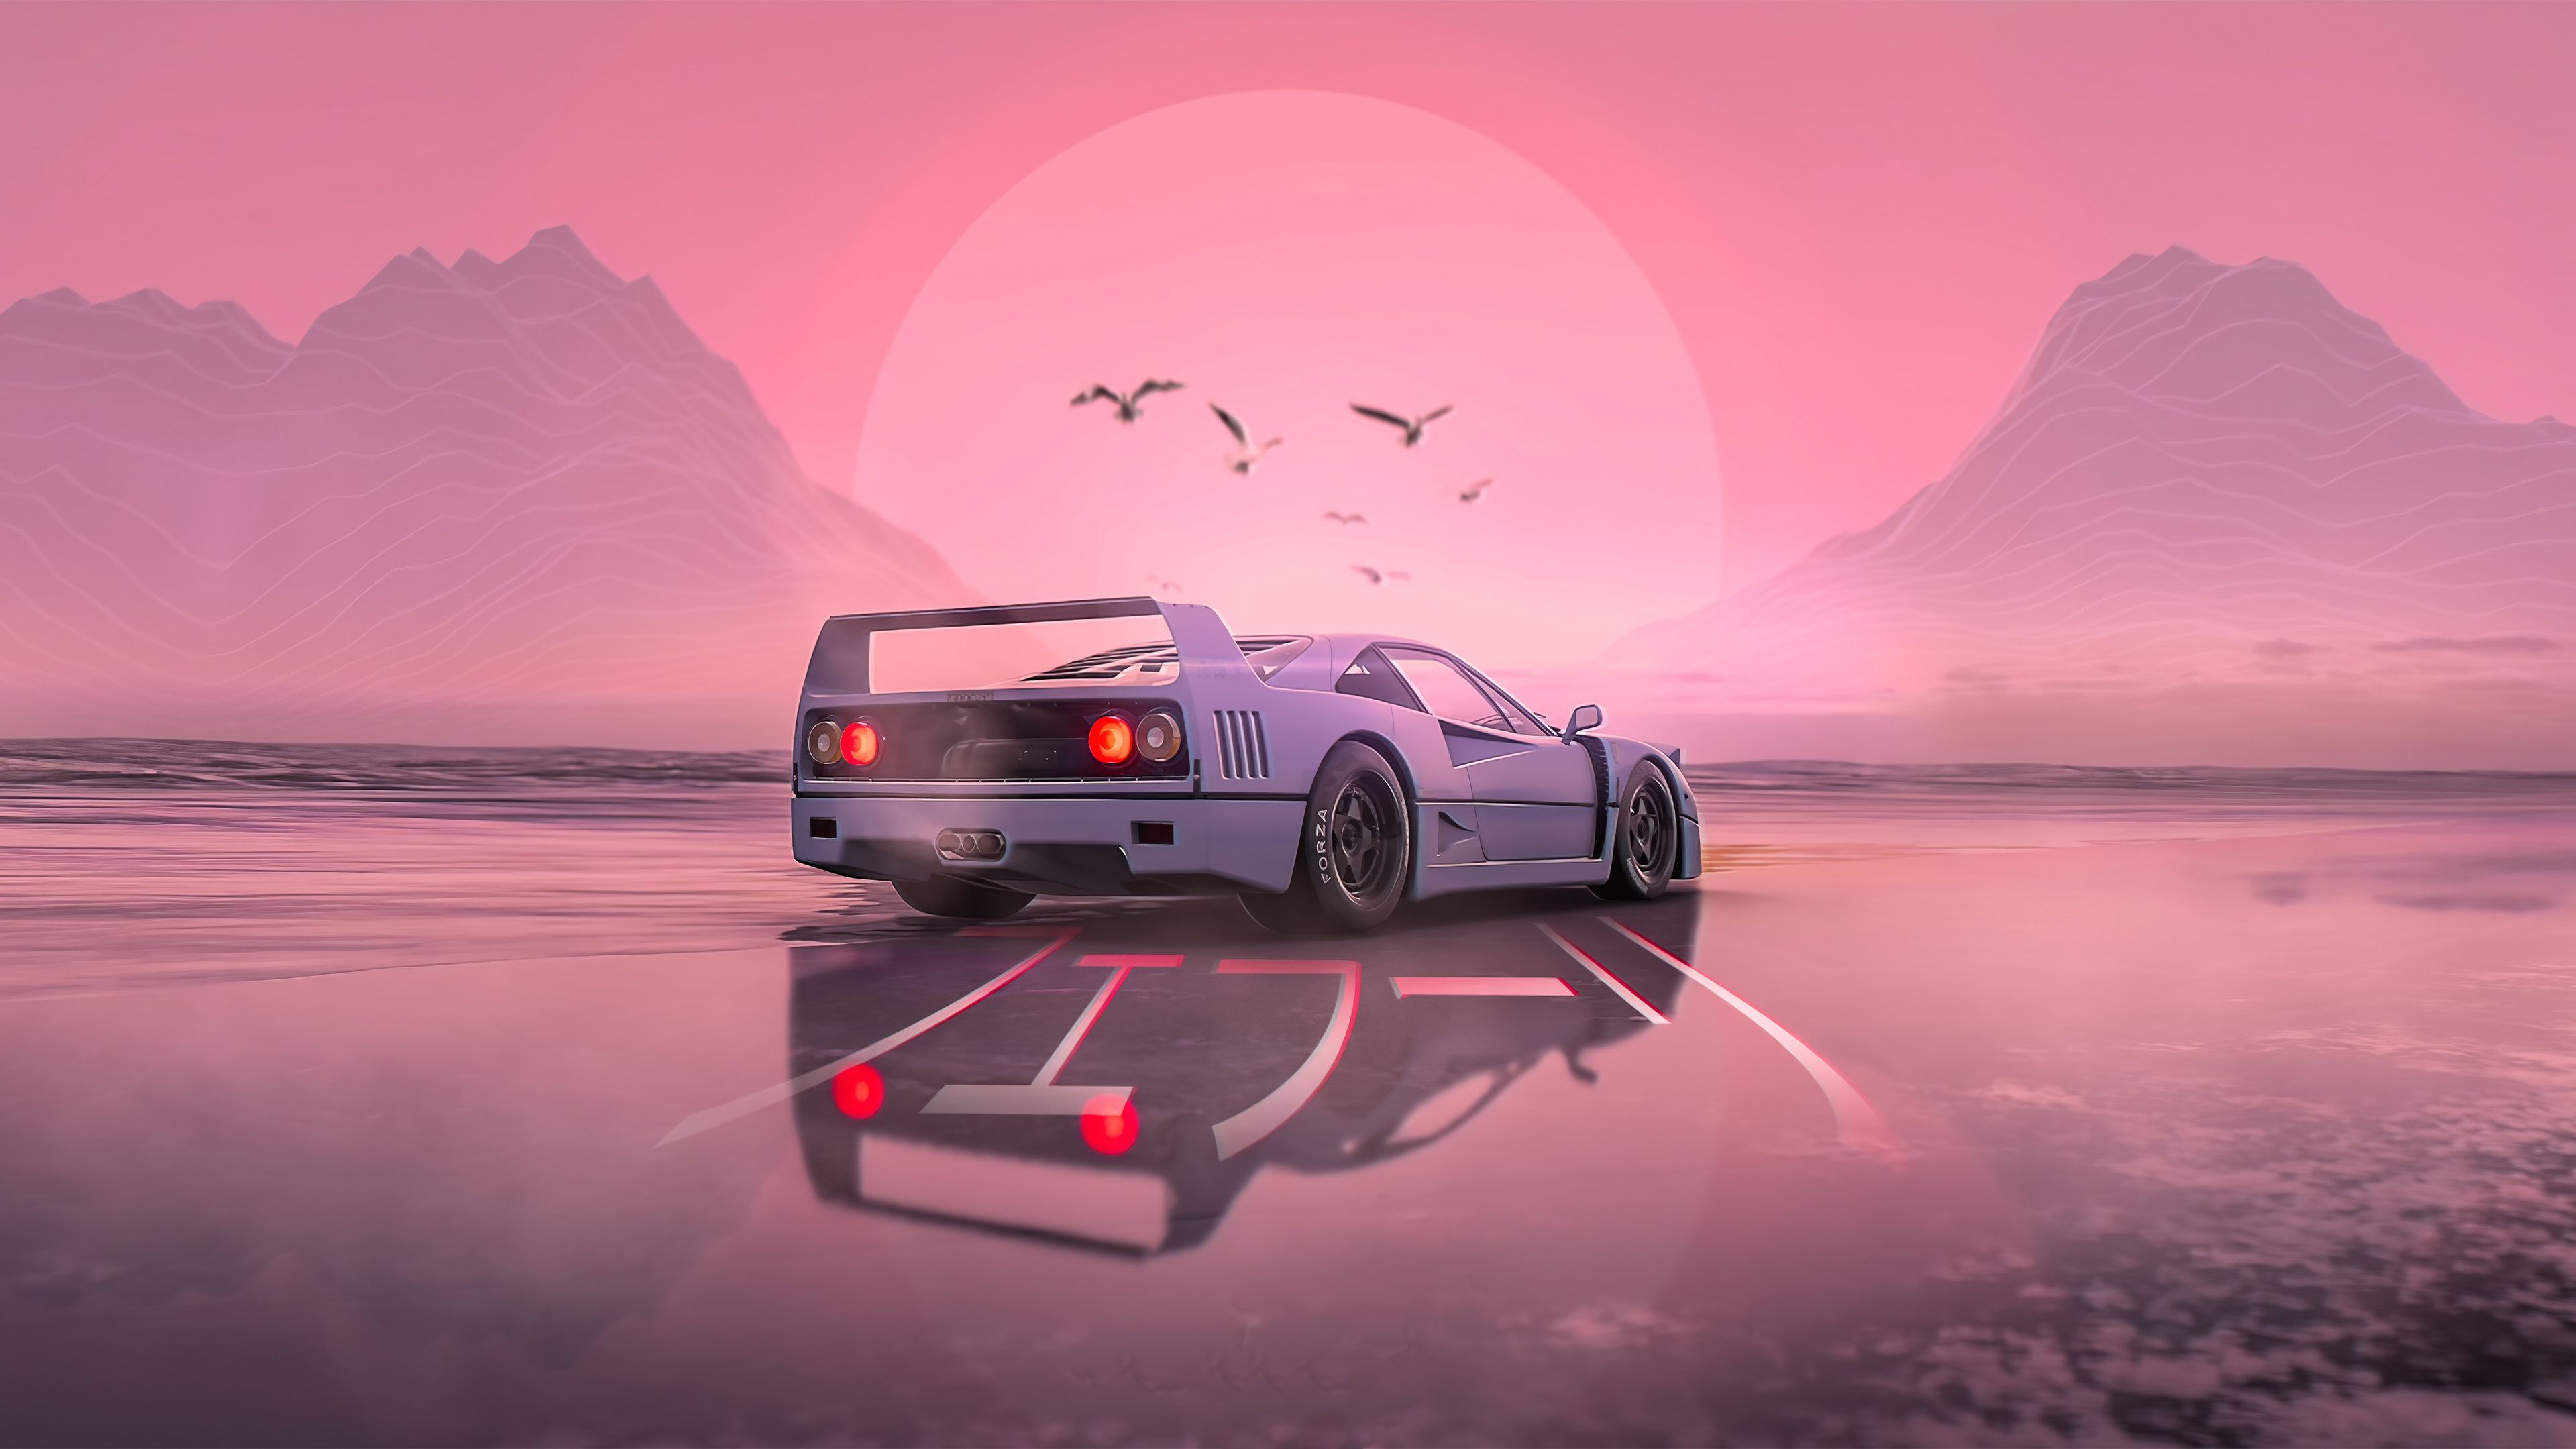 Download high quality 4k car wallpapers of supercars, hyper cars, muscle cars, sports cars, concepts & exotics for your desktop, phone or tablet. Vaporwave Car Wallpaper 4k